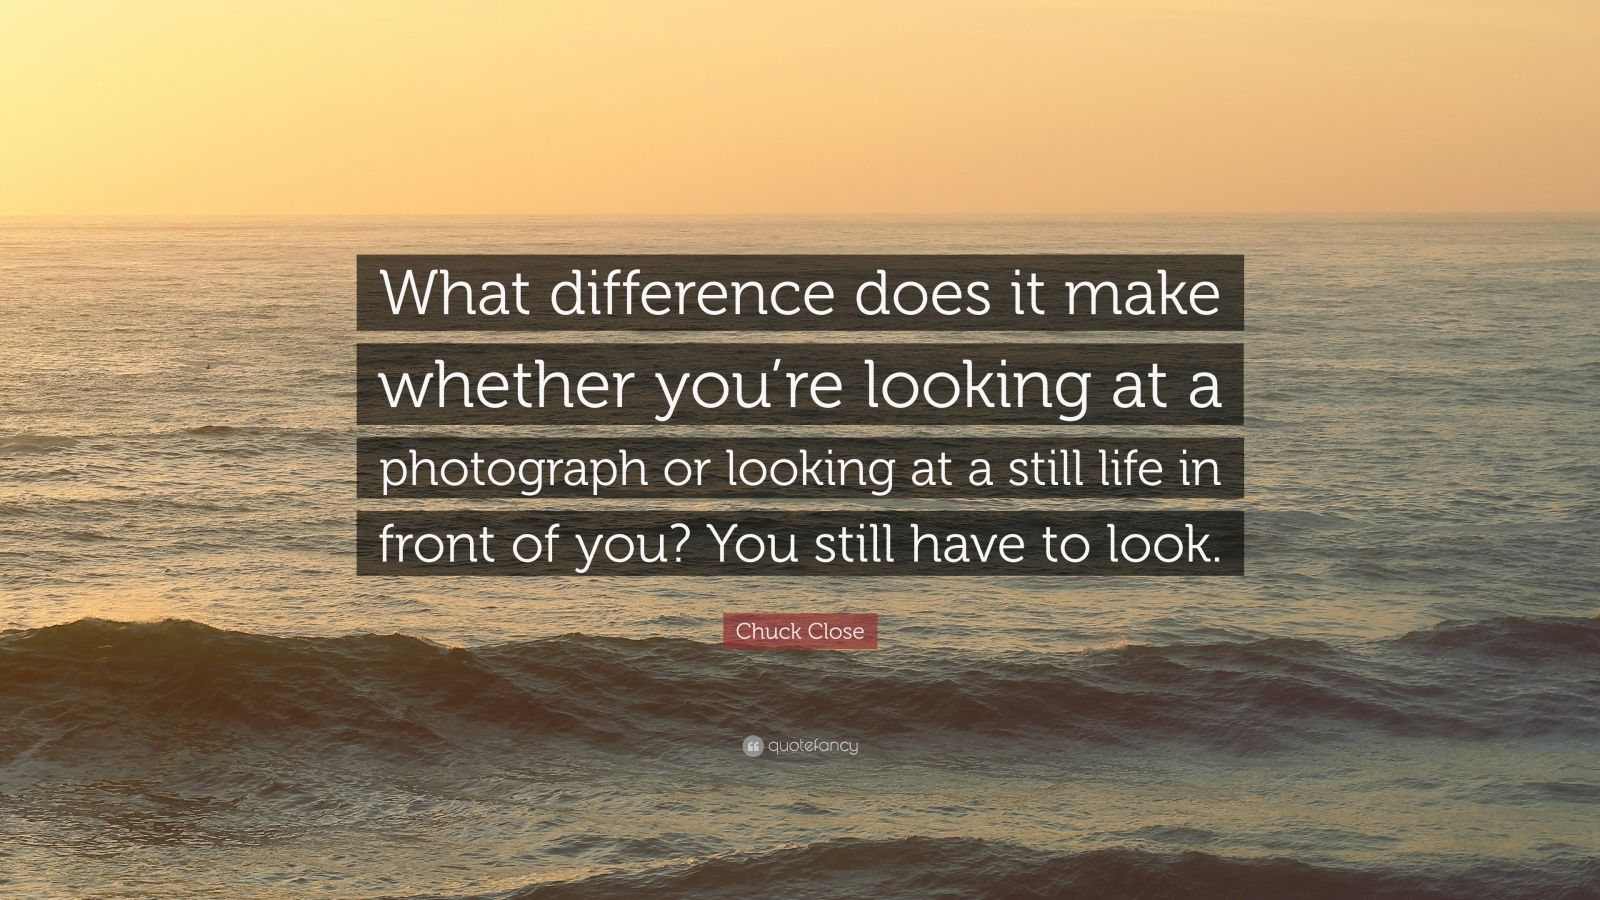 """Chuck Close Quote: """"What difference does it make whether you're looking at a photograph or looking at a still life in front of you? You still have to look."""""""